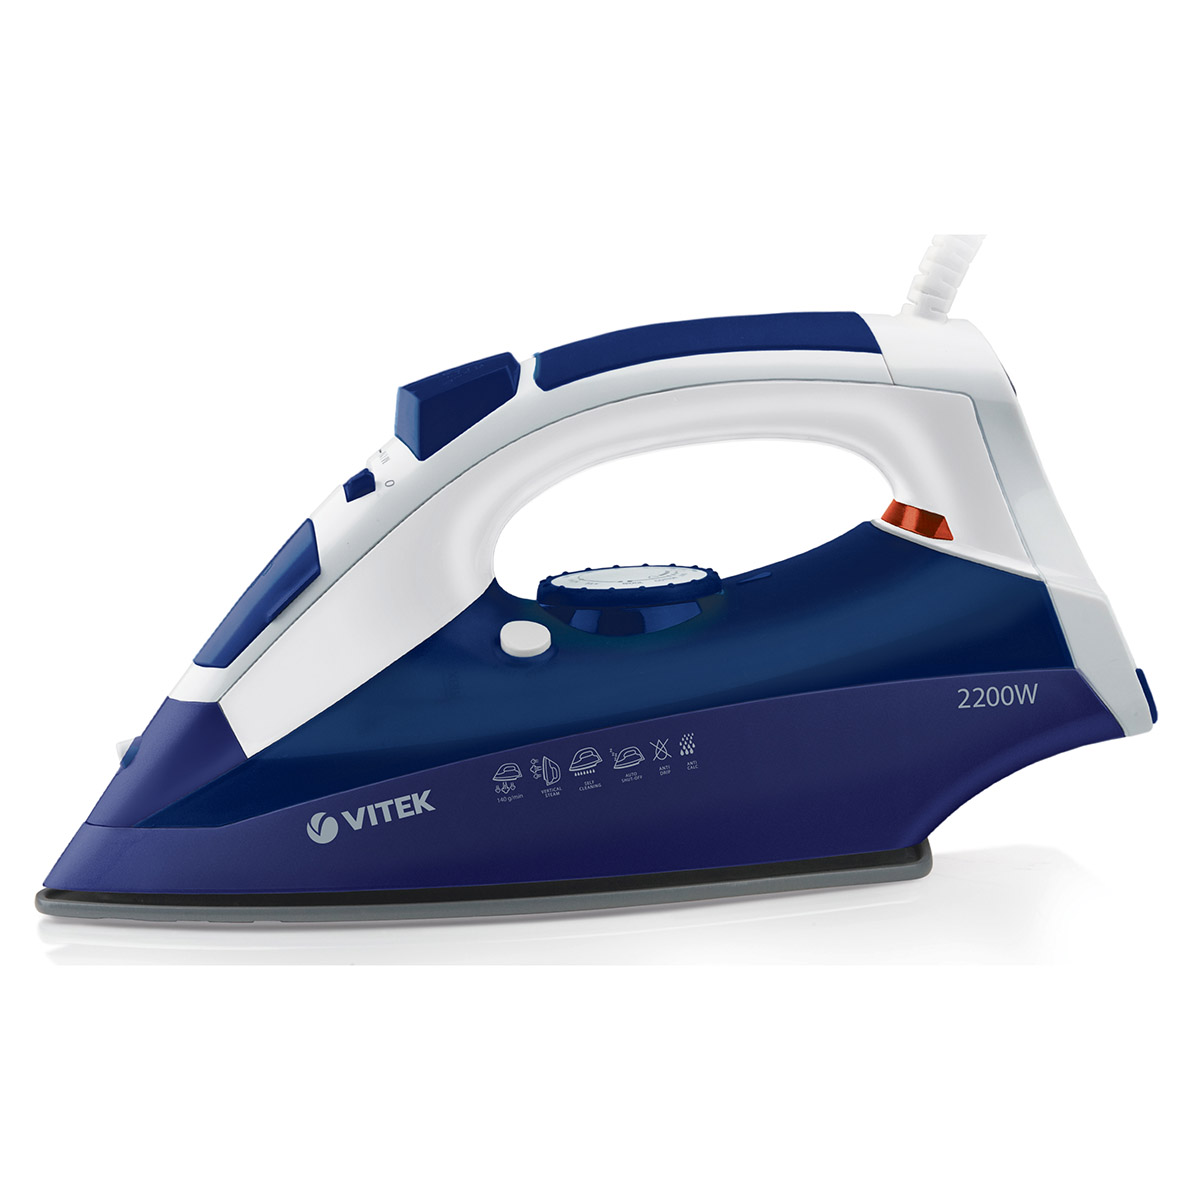 Steam iron VITEK VT-1245P iron vitek vt 1215 iron steam generator iron for ironing irons steam iron electriciron